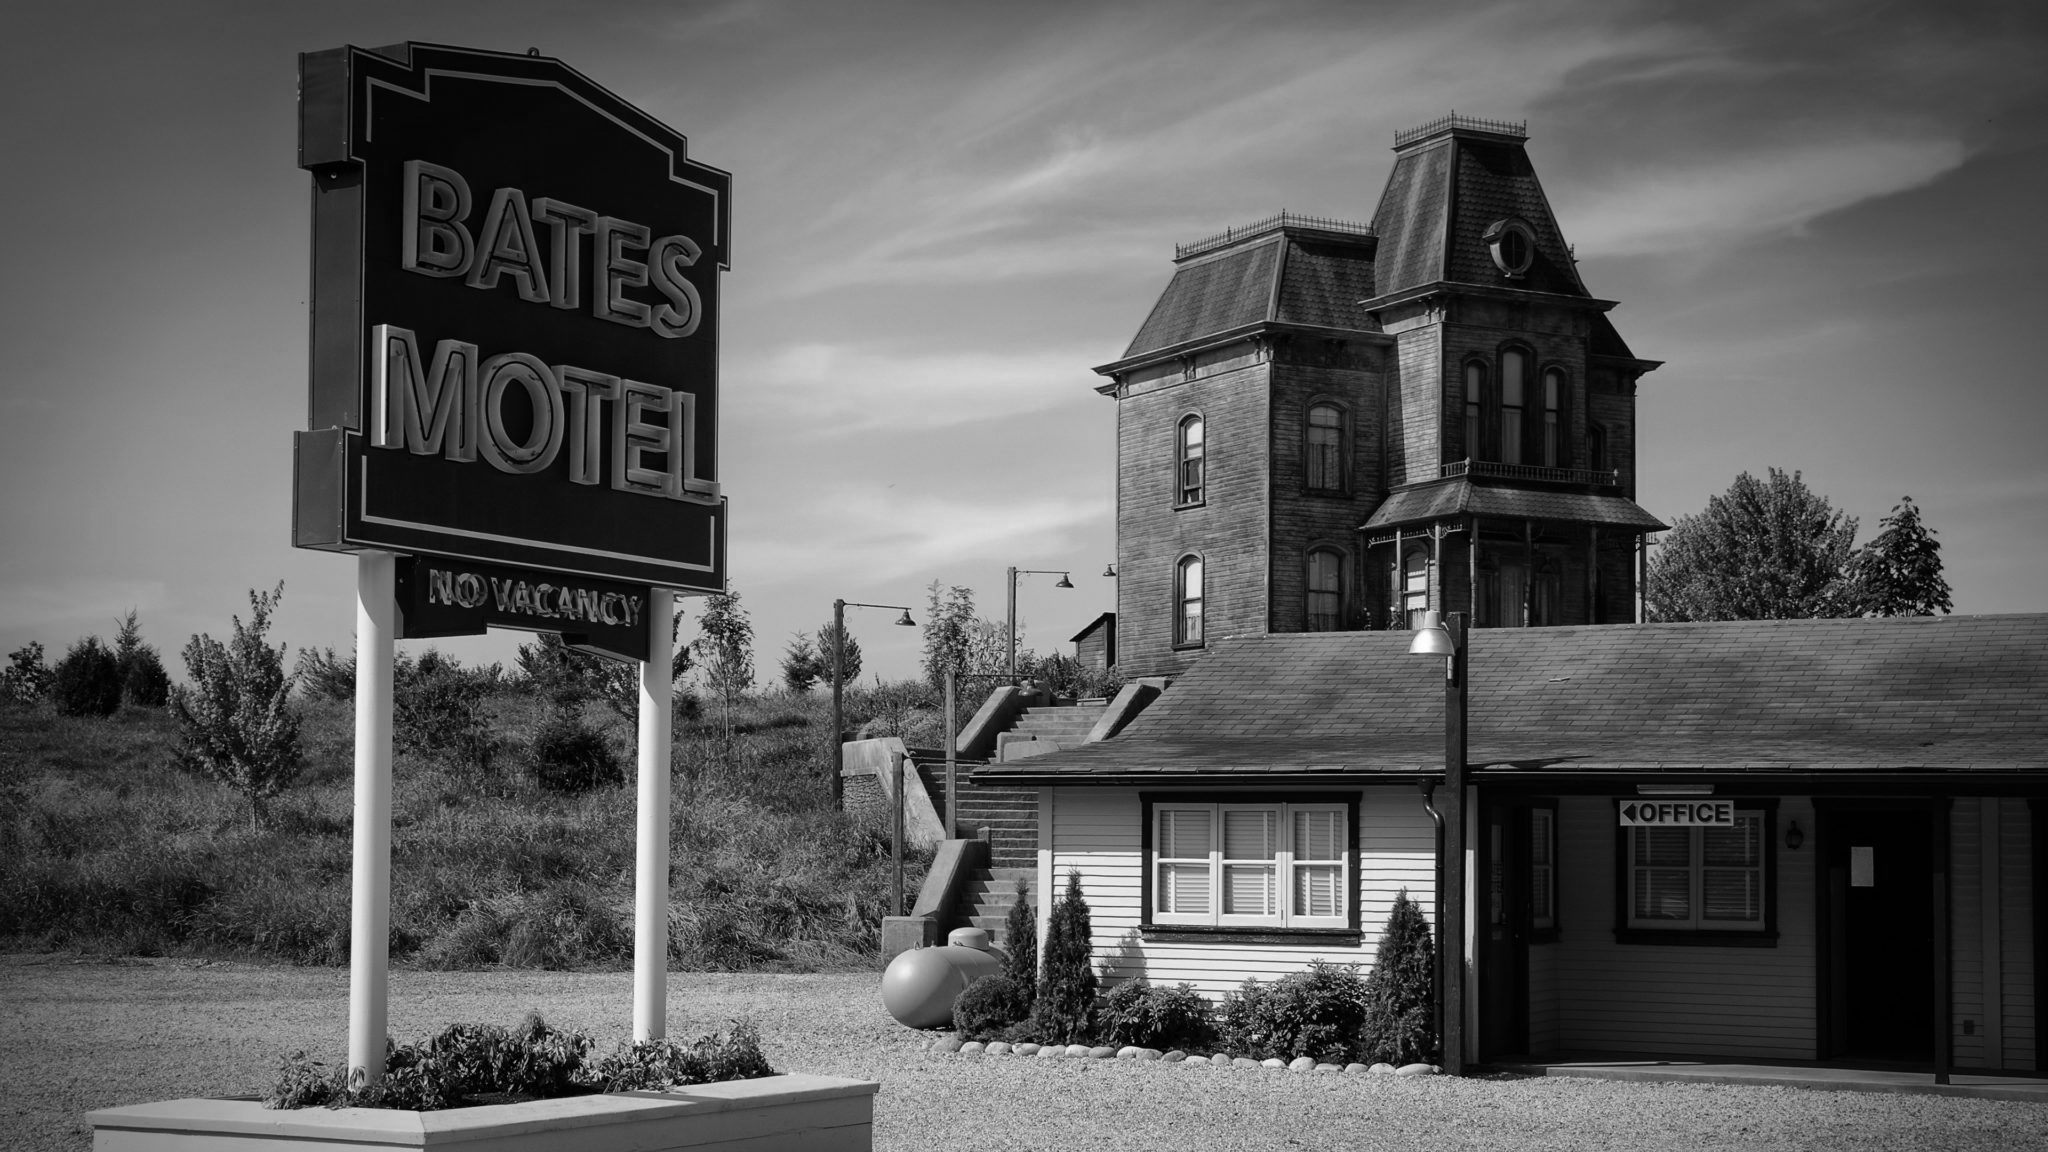 The Bates Motel in Psycho (1960)